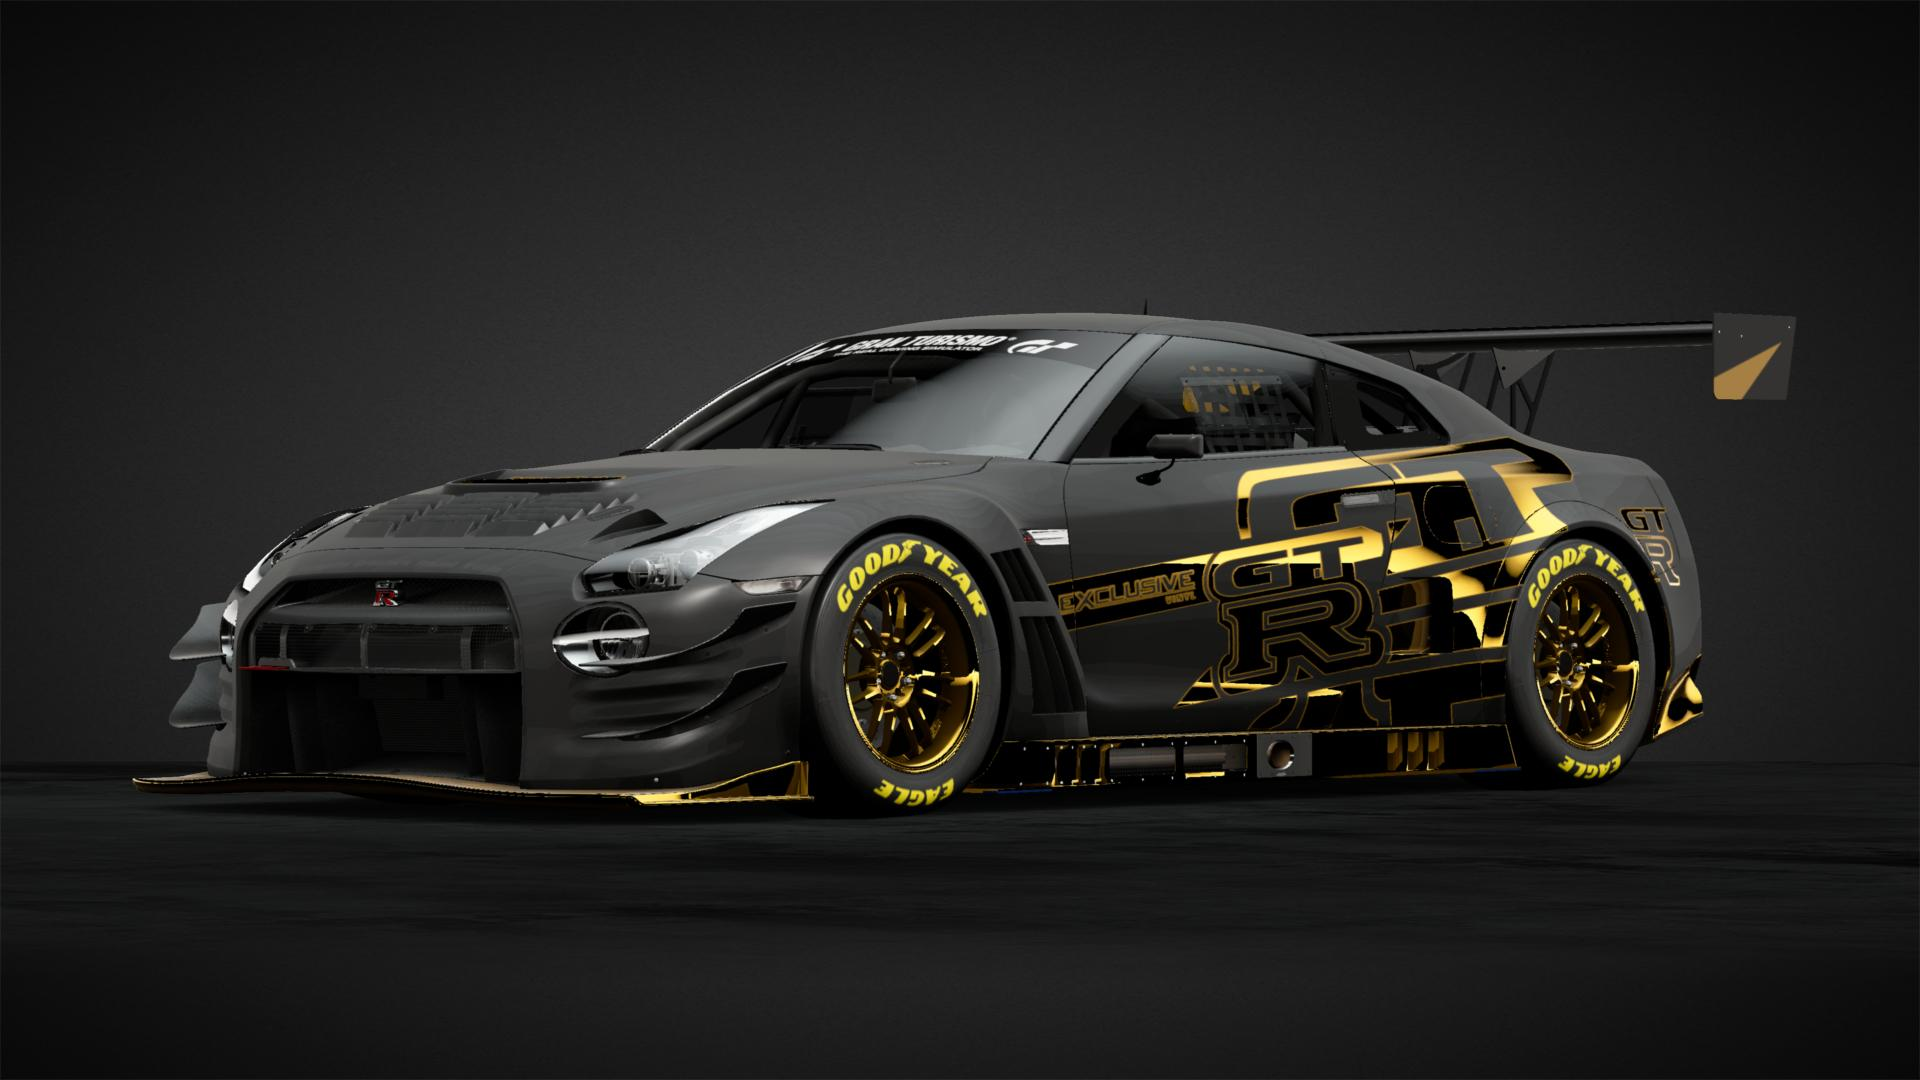 Liberty Walk Nissan GT-R R35 - Car Livery by Zockerking-Gold